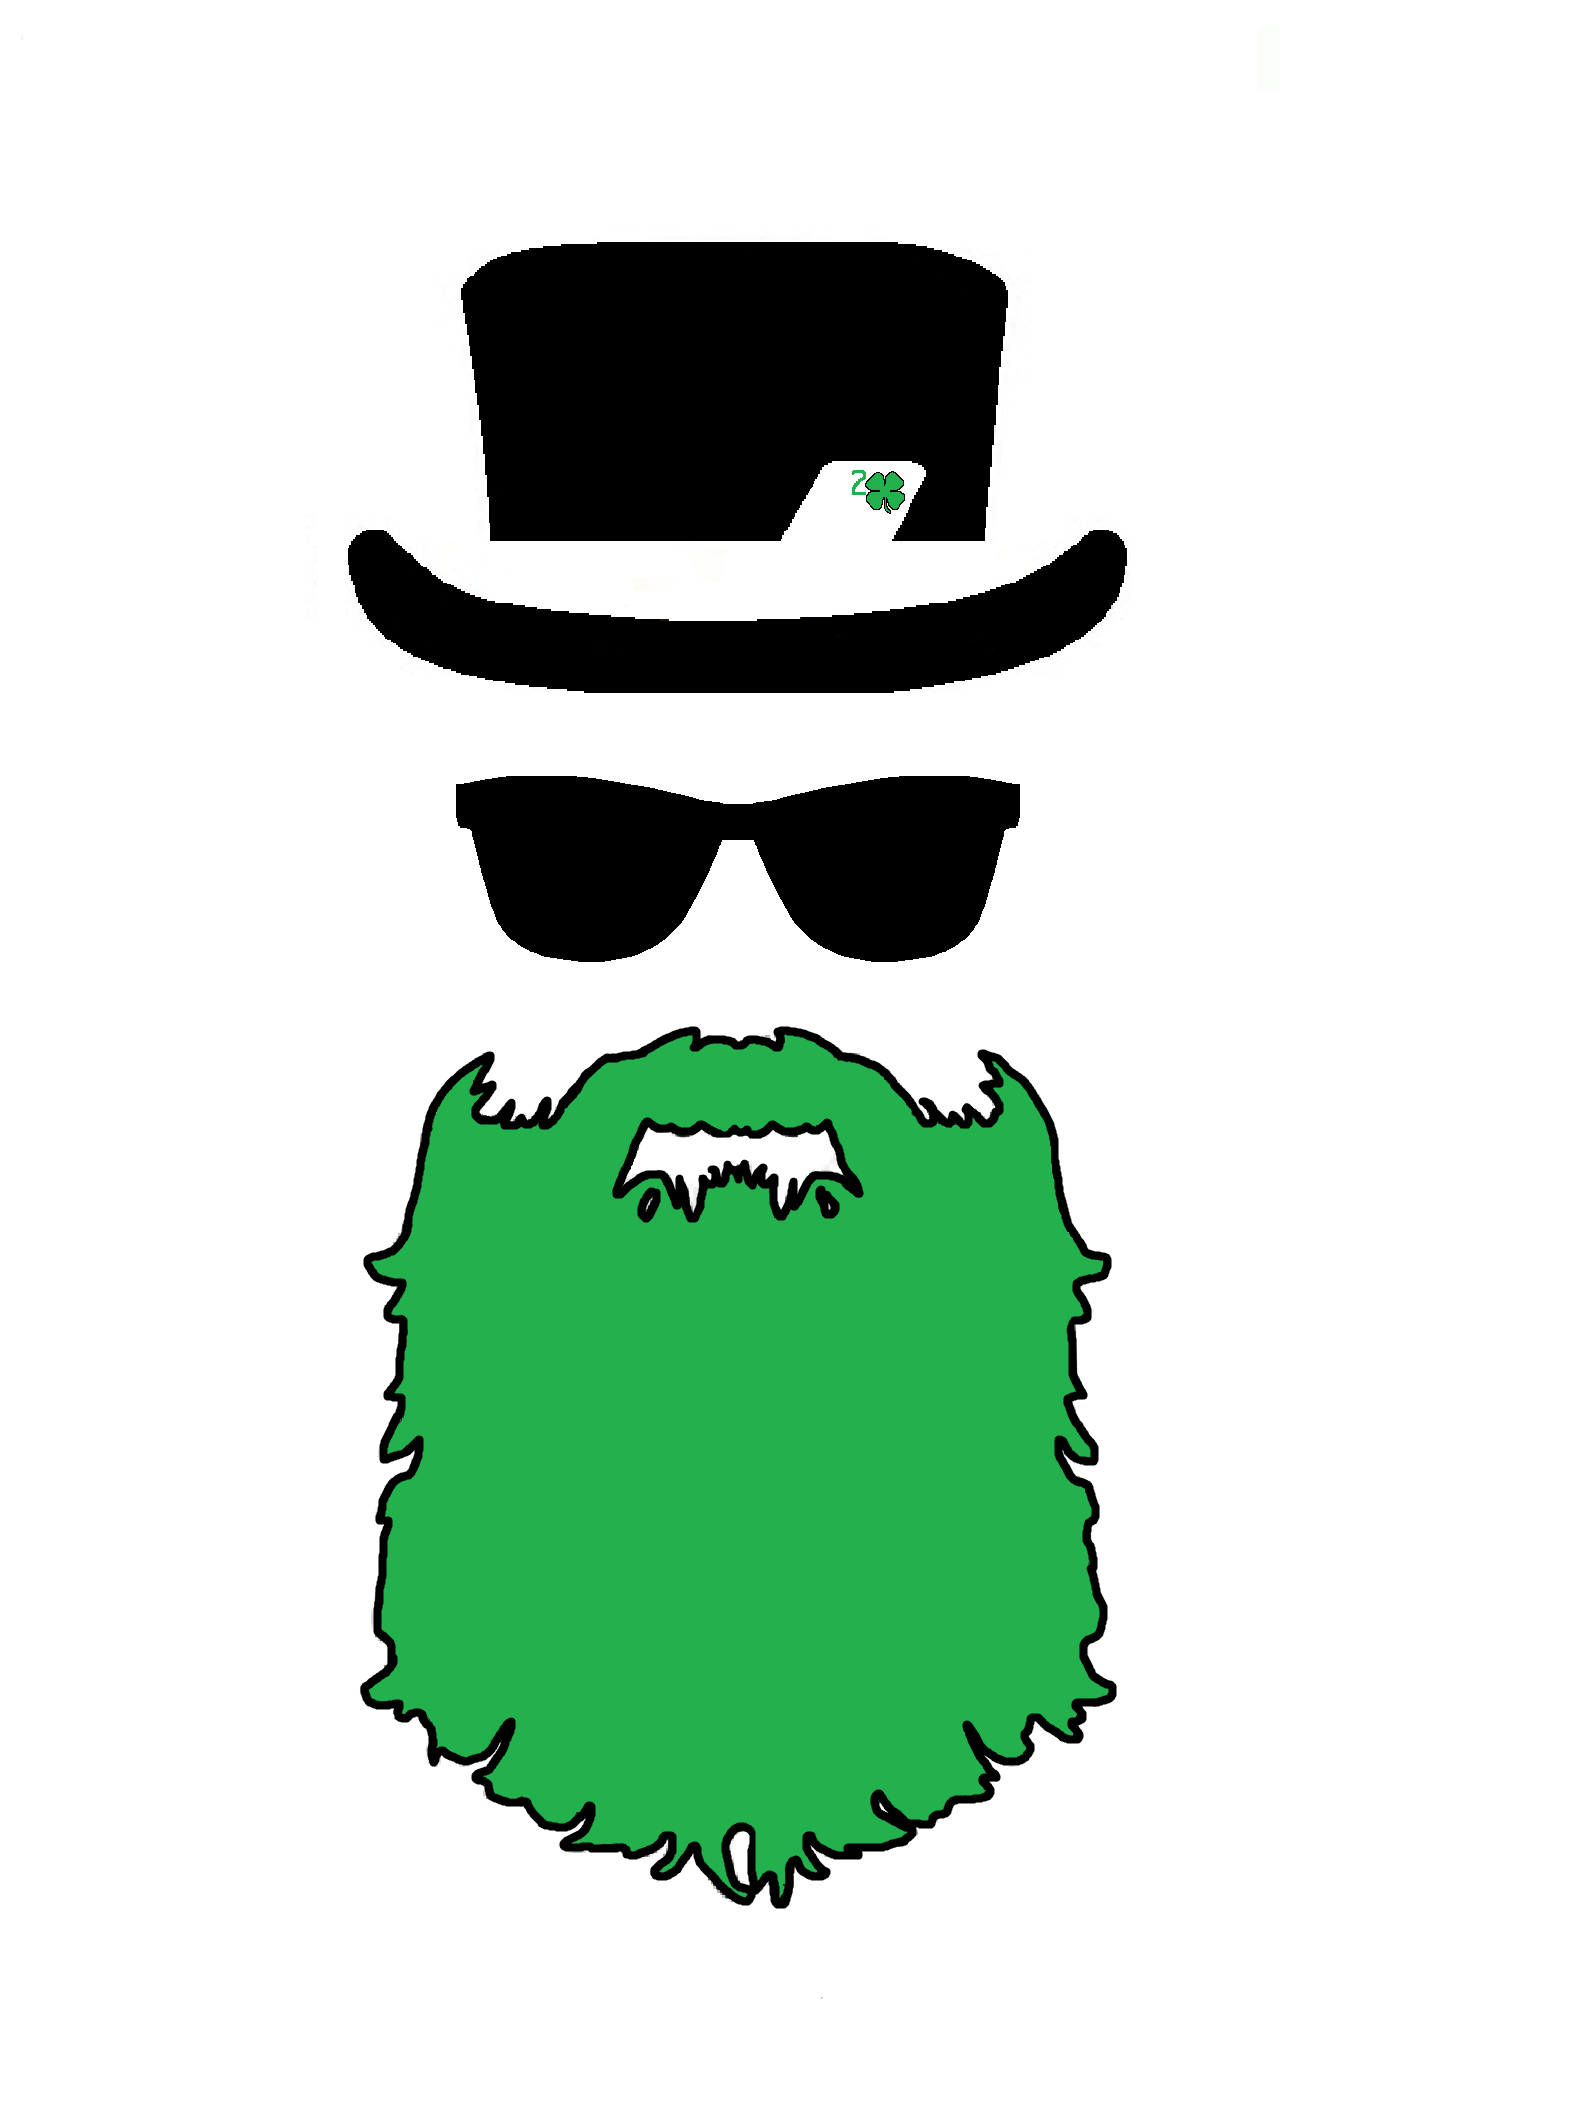 St. Patrick's Day - Are you hosting the St. Paddy's day of the year? Don't leave it to the luck of the Irish and hire any old leprechaun, book the best.